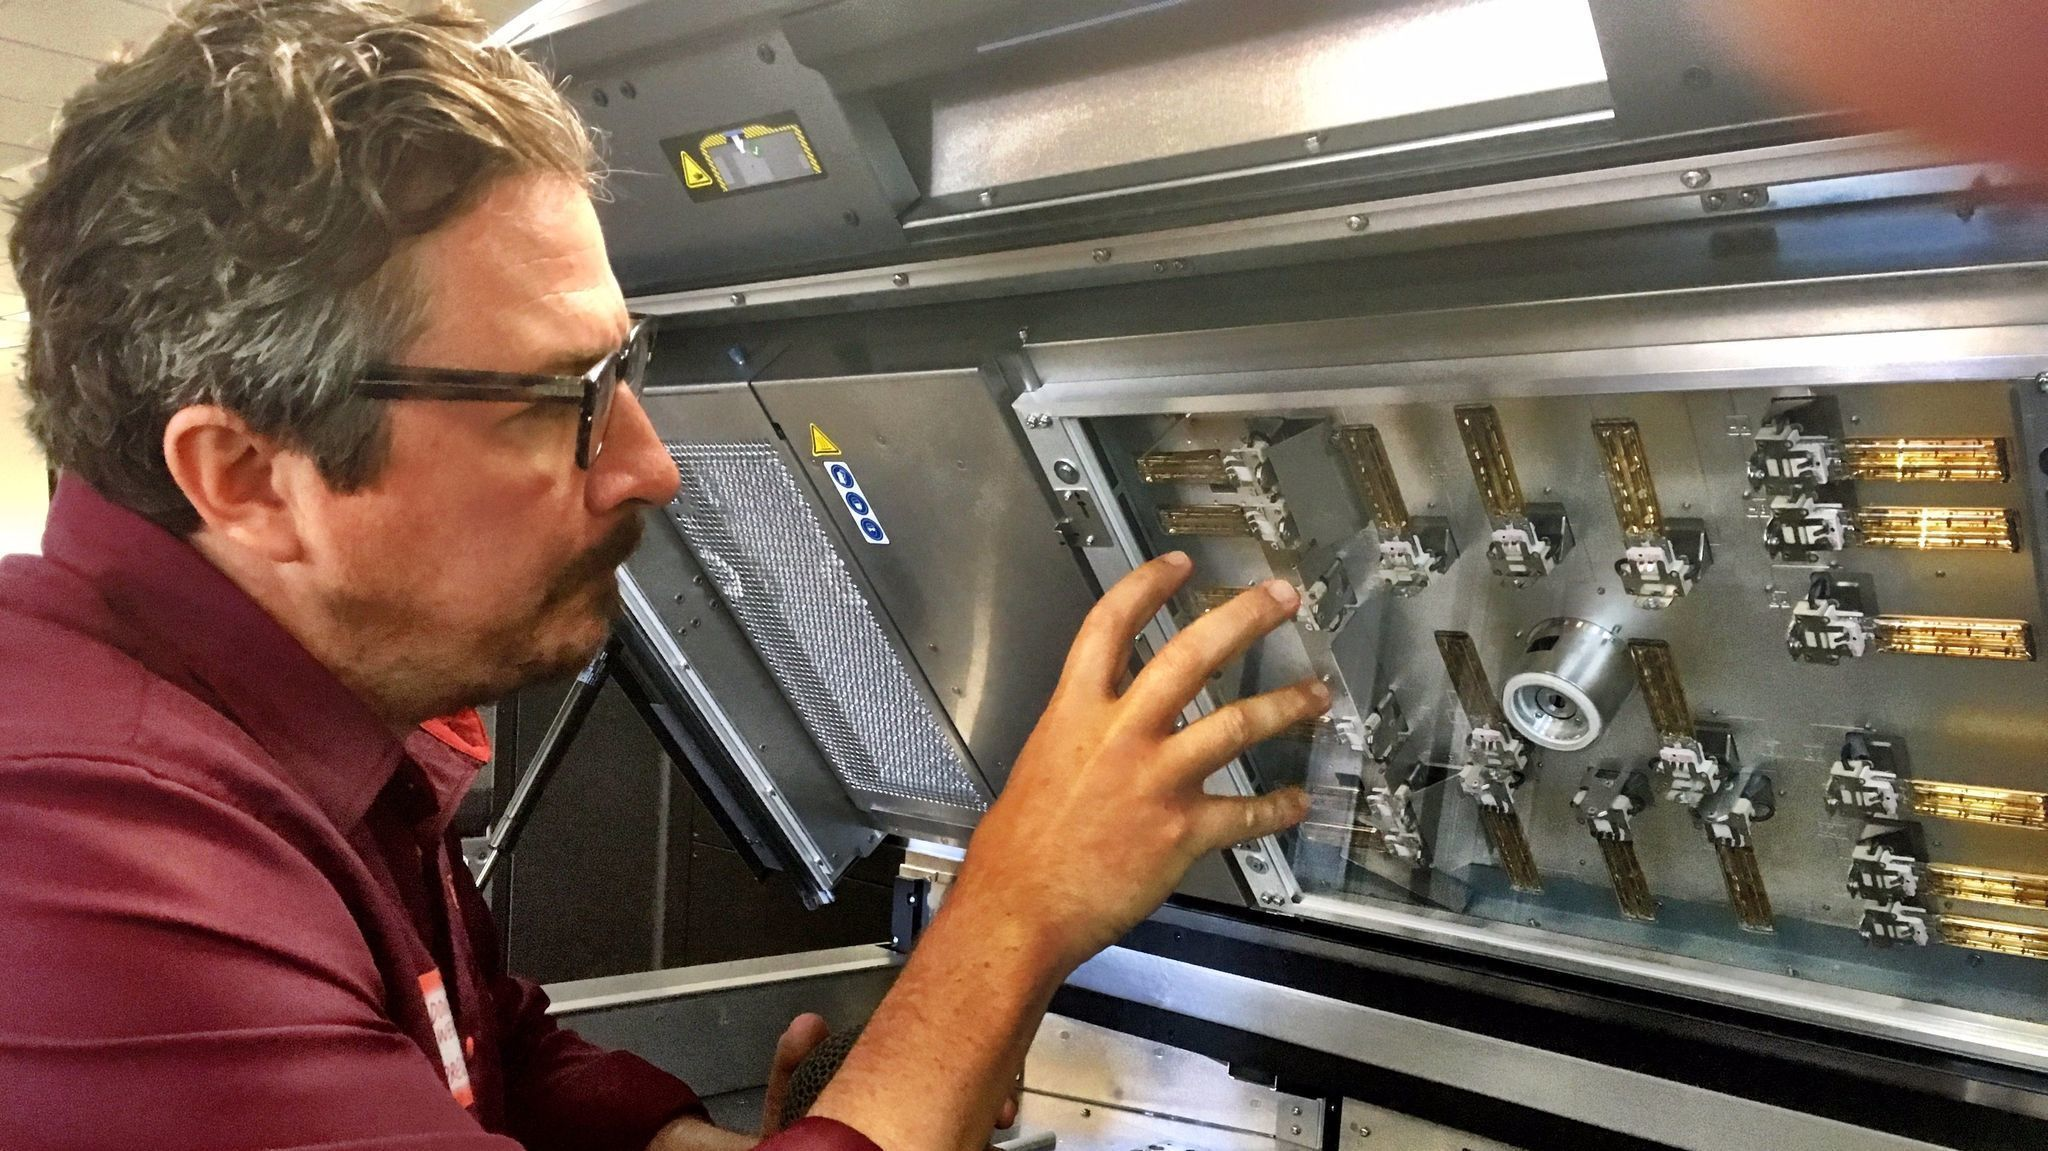 3D printing technology pushes deeper into manufacturing